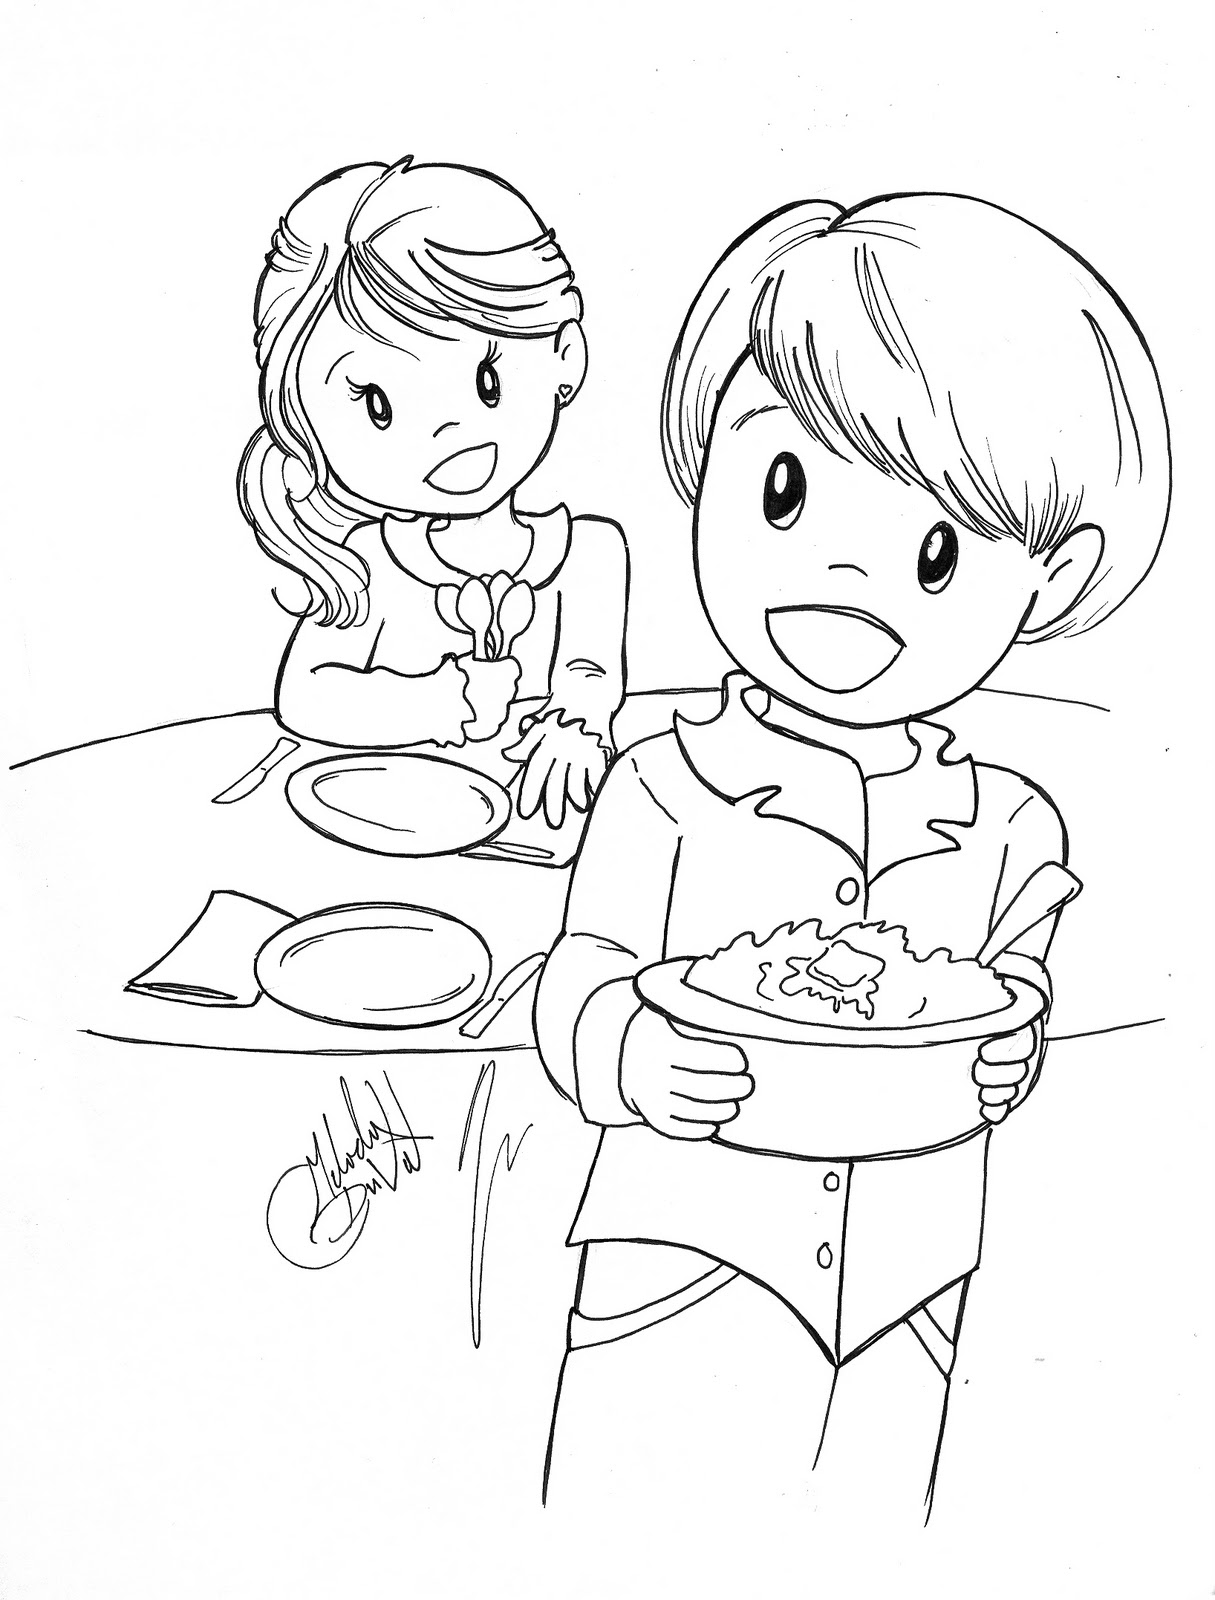 coloring pages of place setting - photo#35